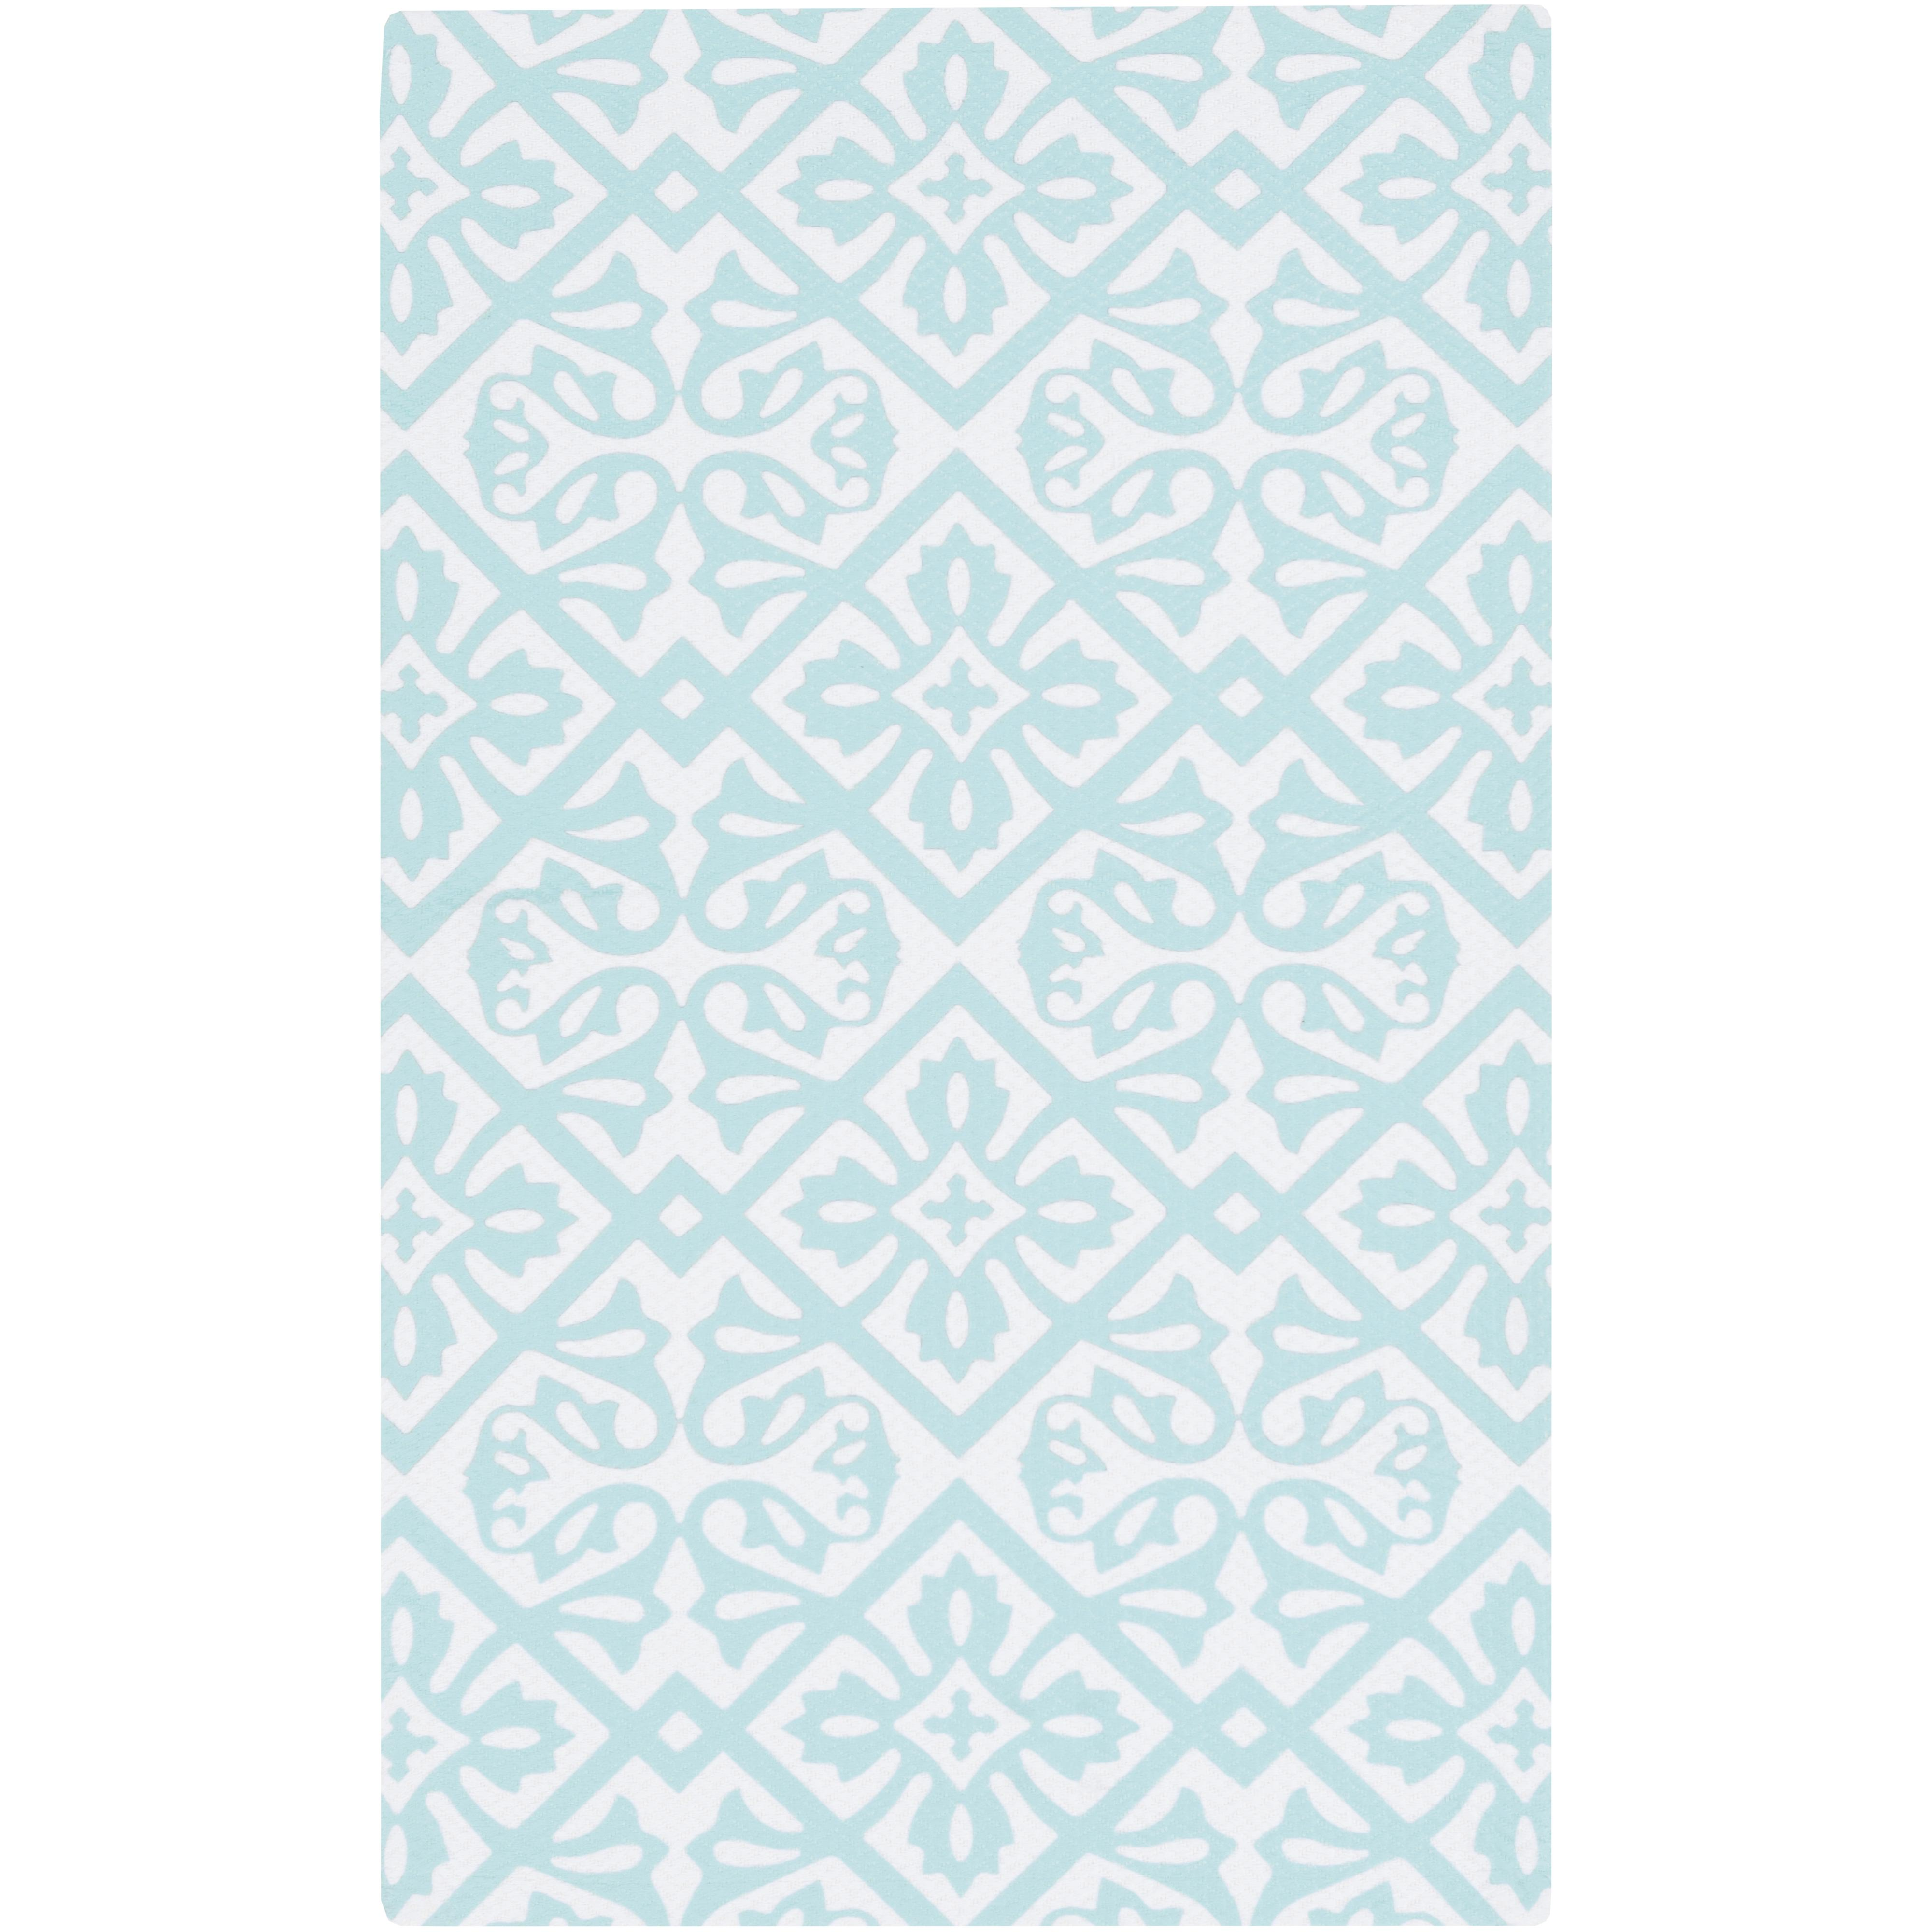 Surya Rugs Cape cod 2' x 3' - Item Number: CCD1008-23